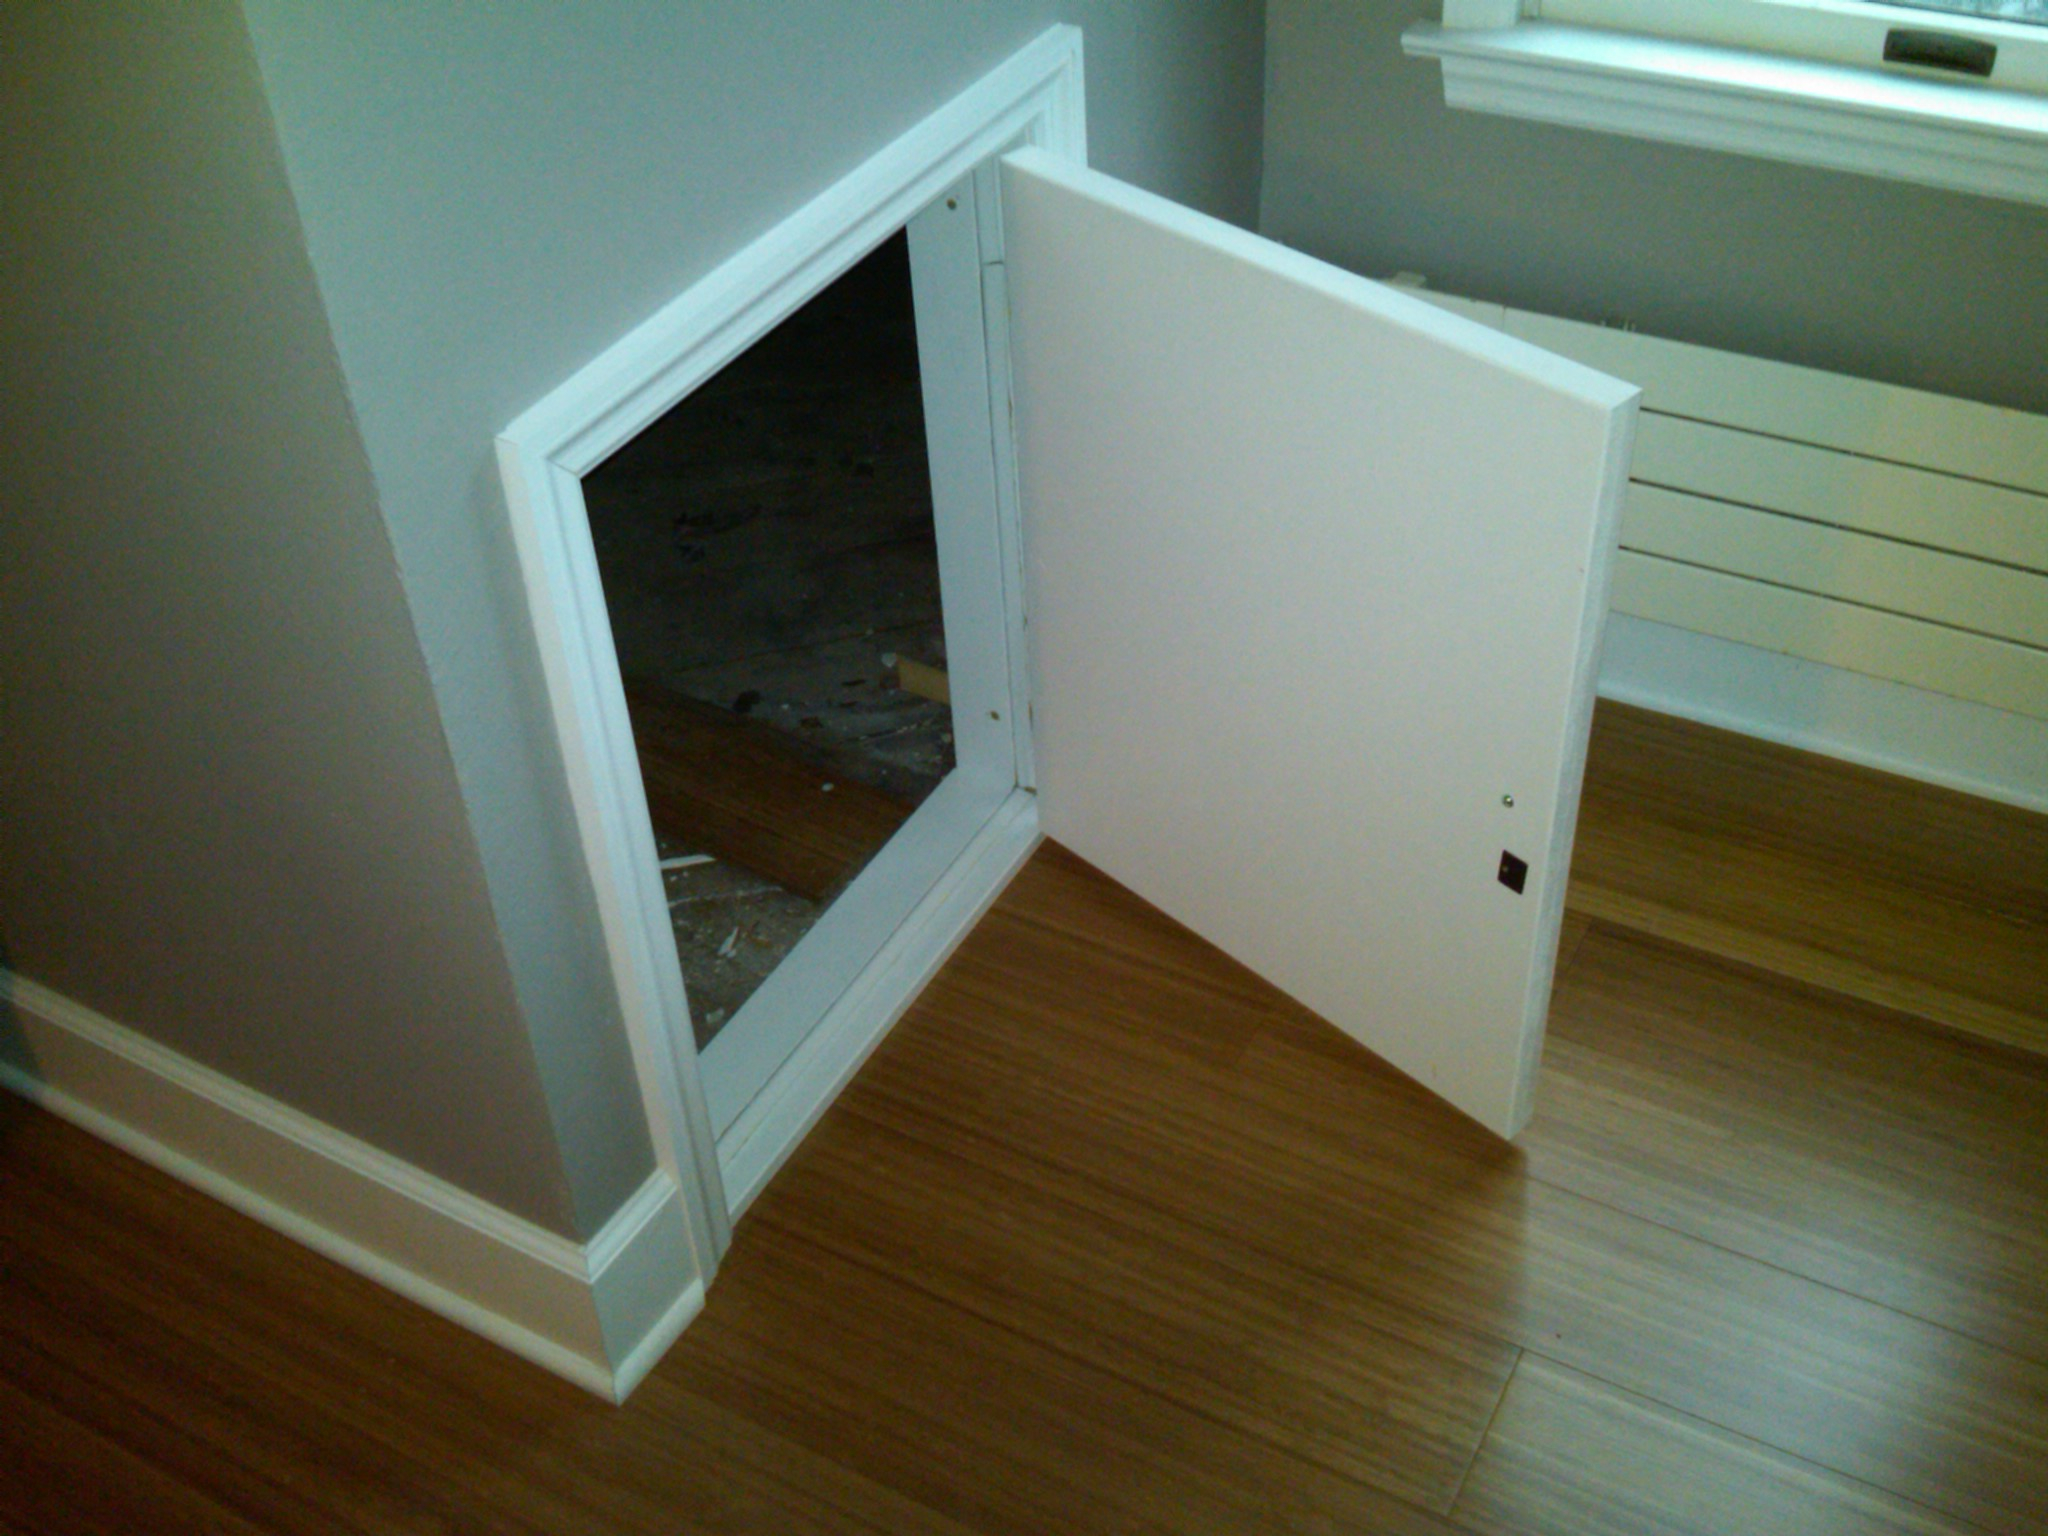 Attic crawl space storage ideas attic ideas for Crawl space conversion cost